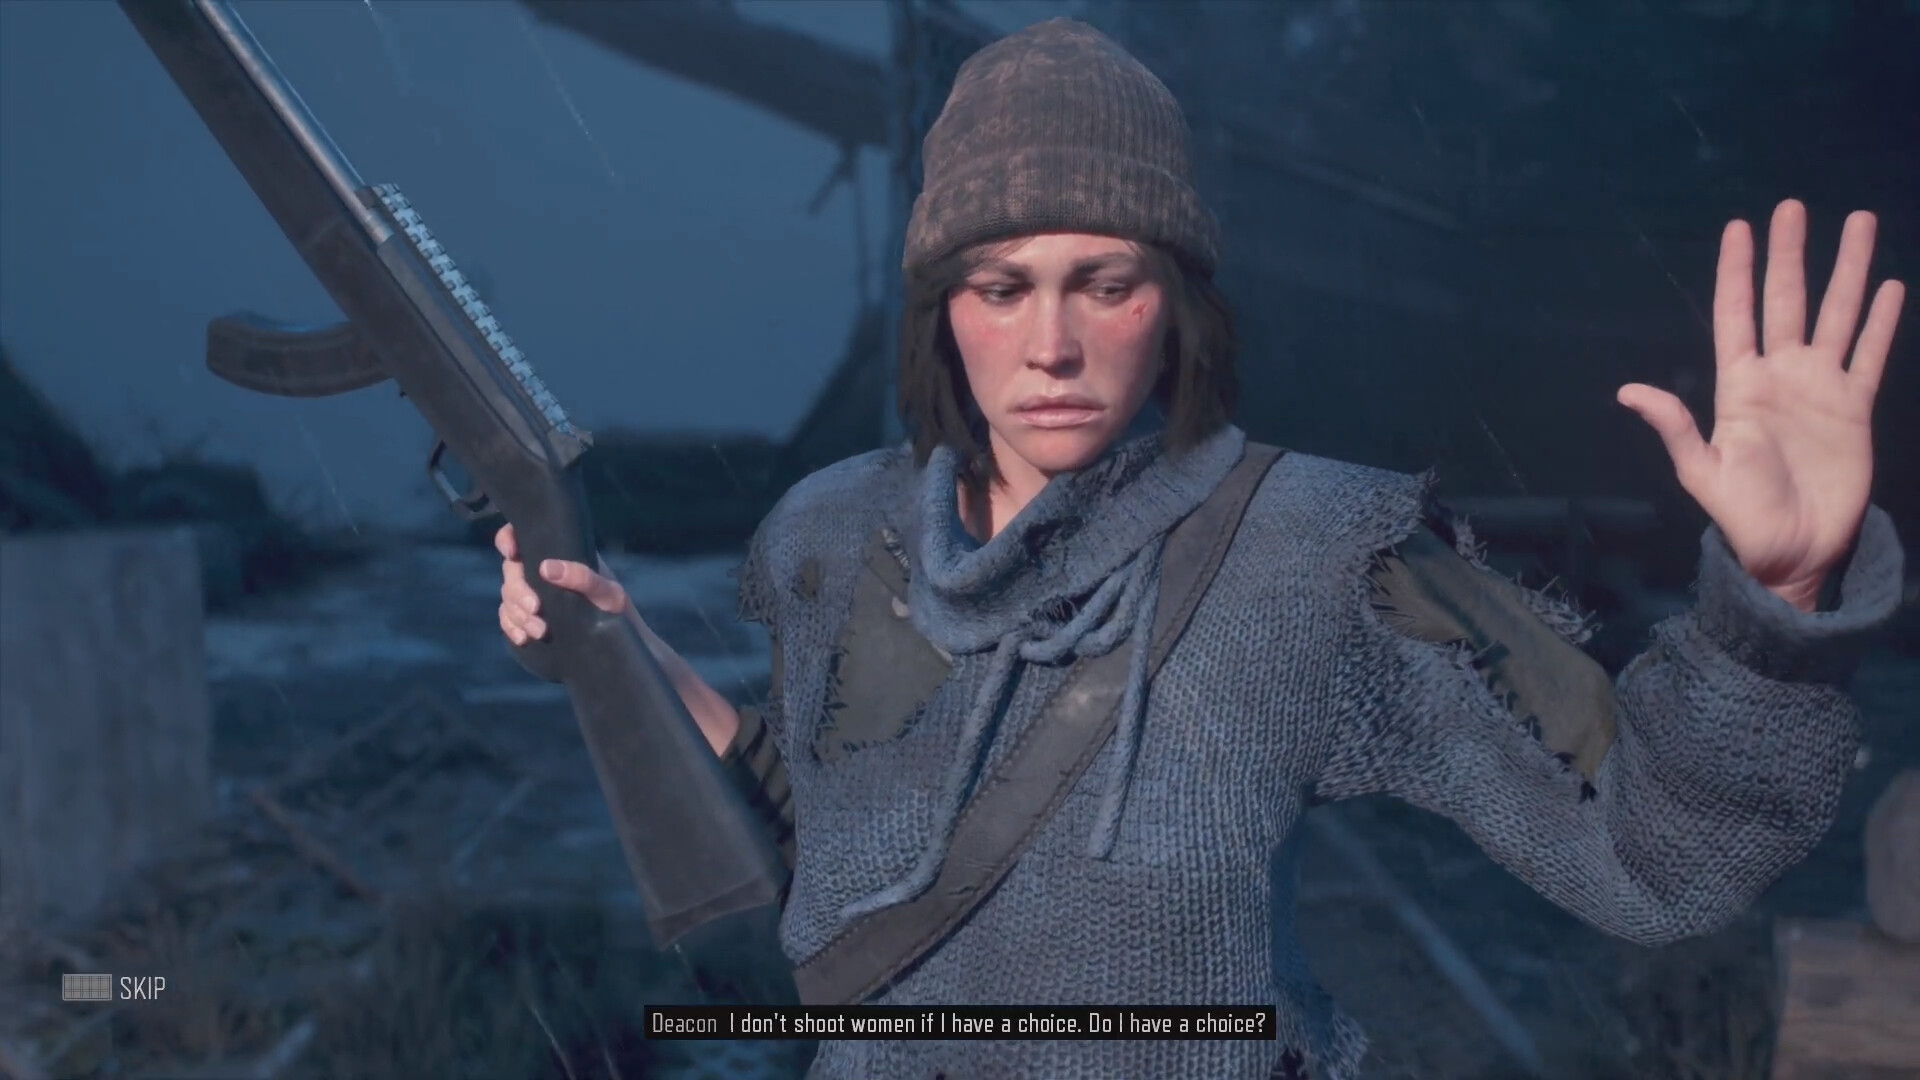 Dustin brown boozer blames deacon for not killing mary days gone 2019 0 20 screenshot